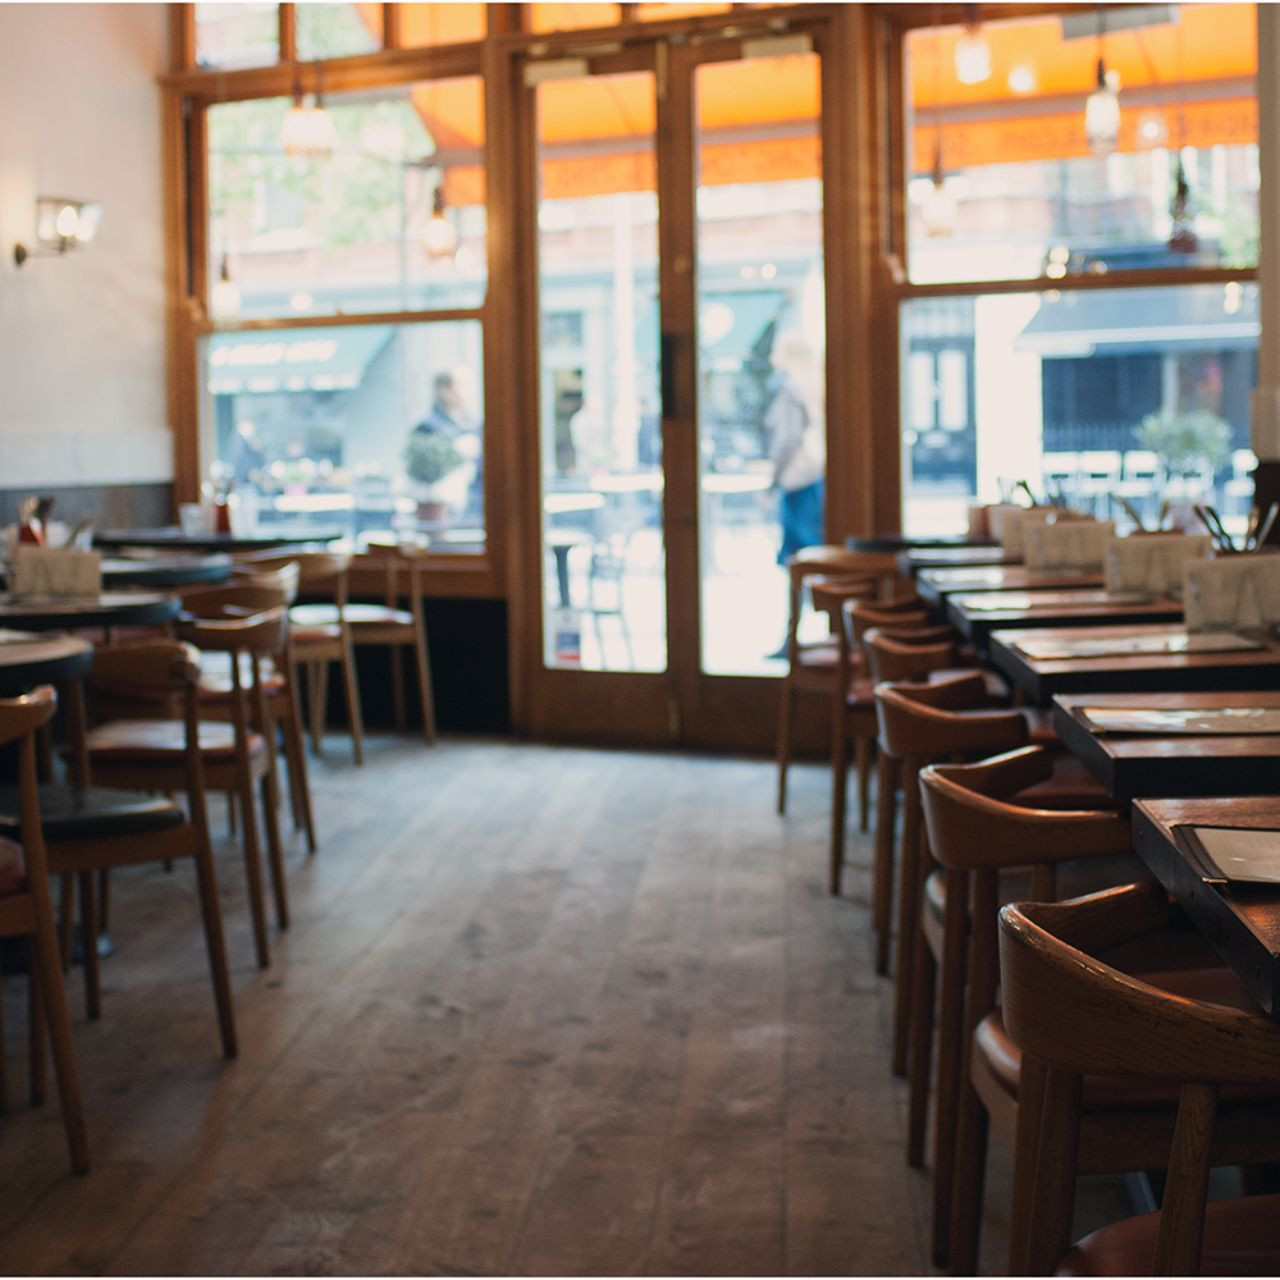 reward hardwood flooring prices of casa brindisa london opentable inside 24064175